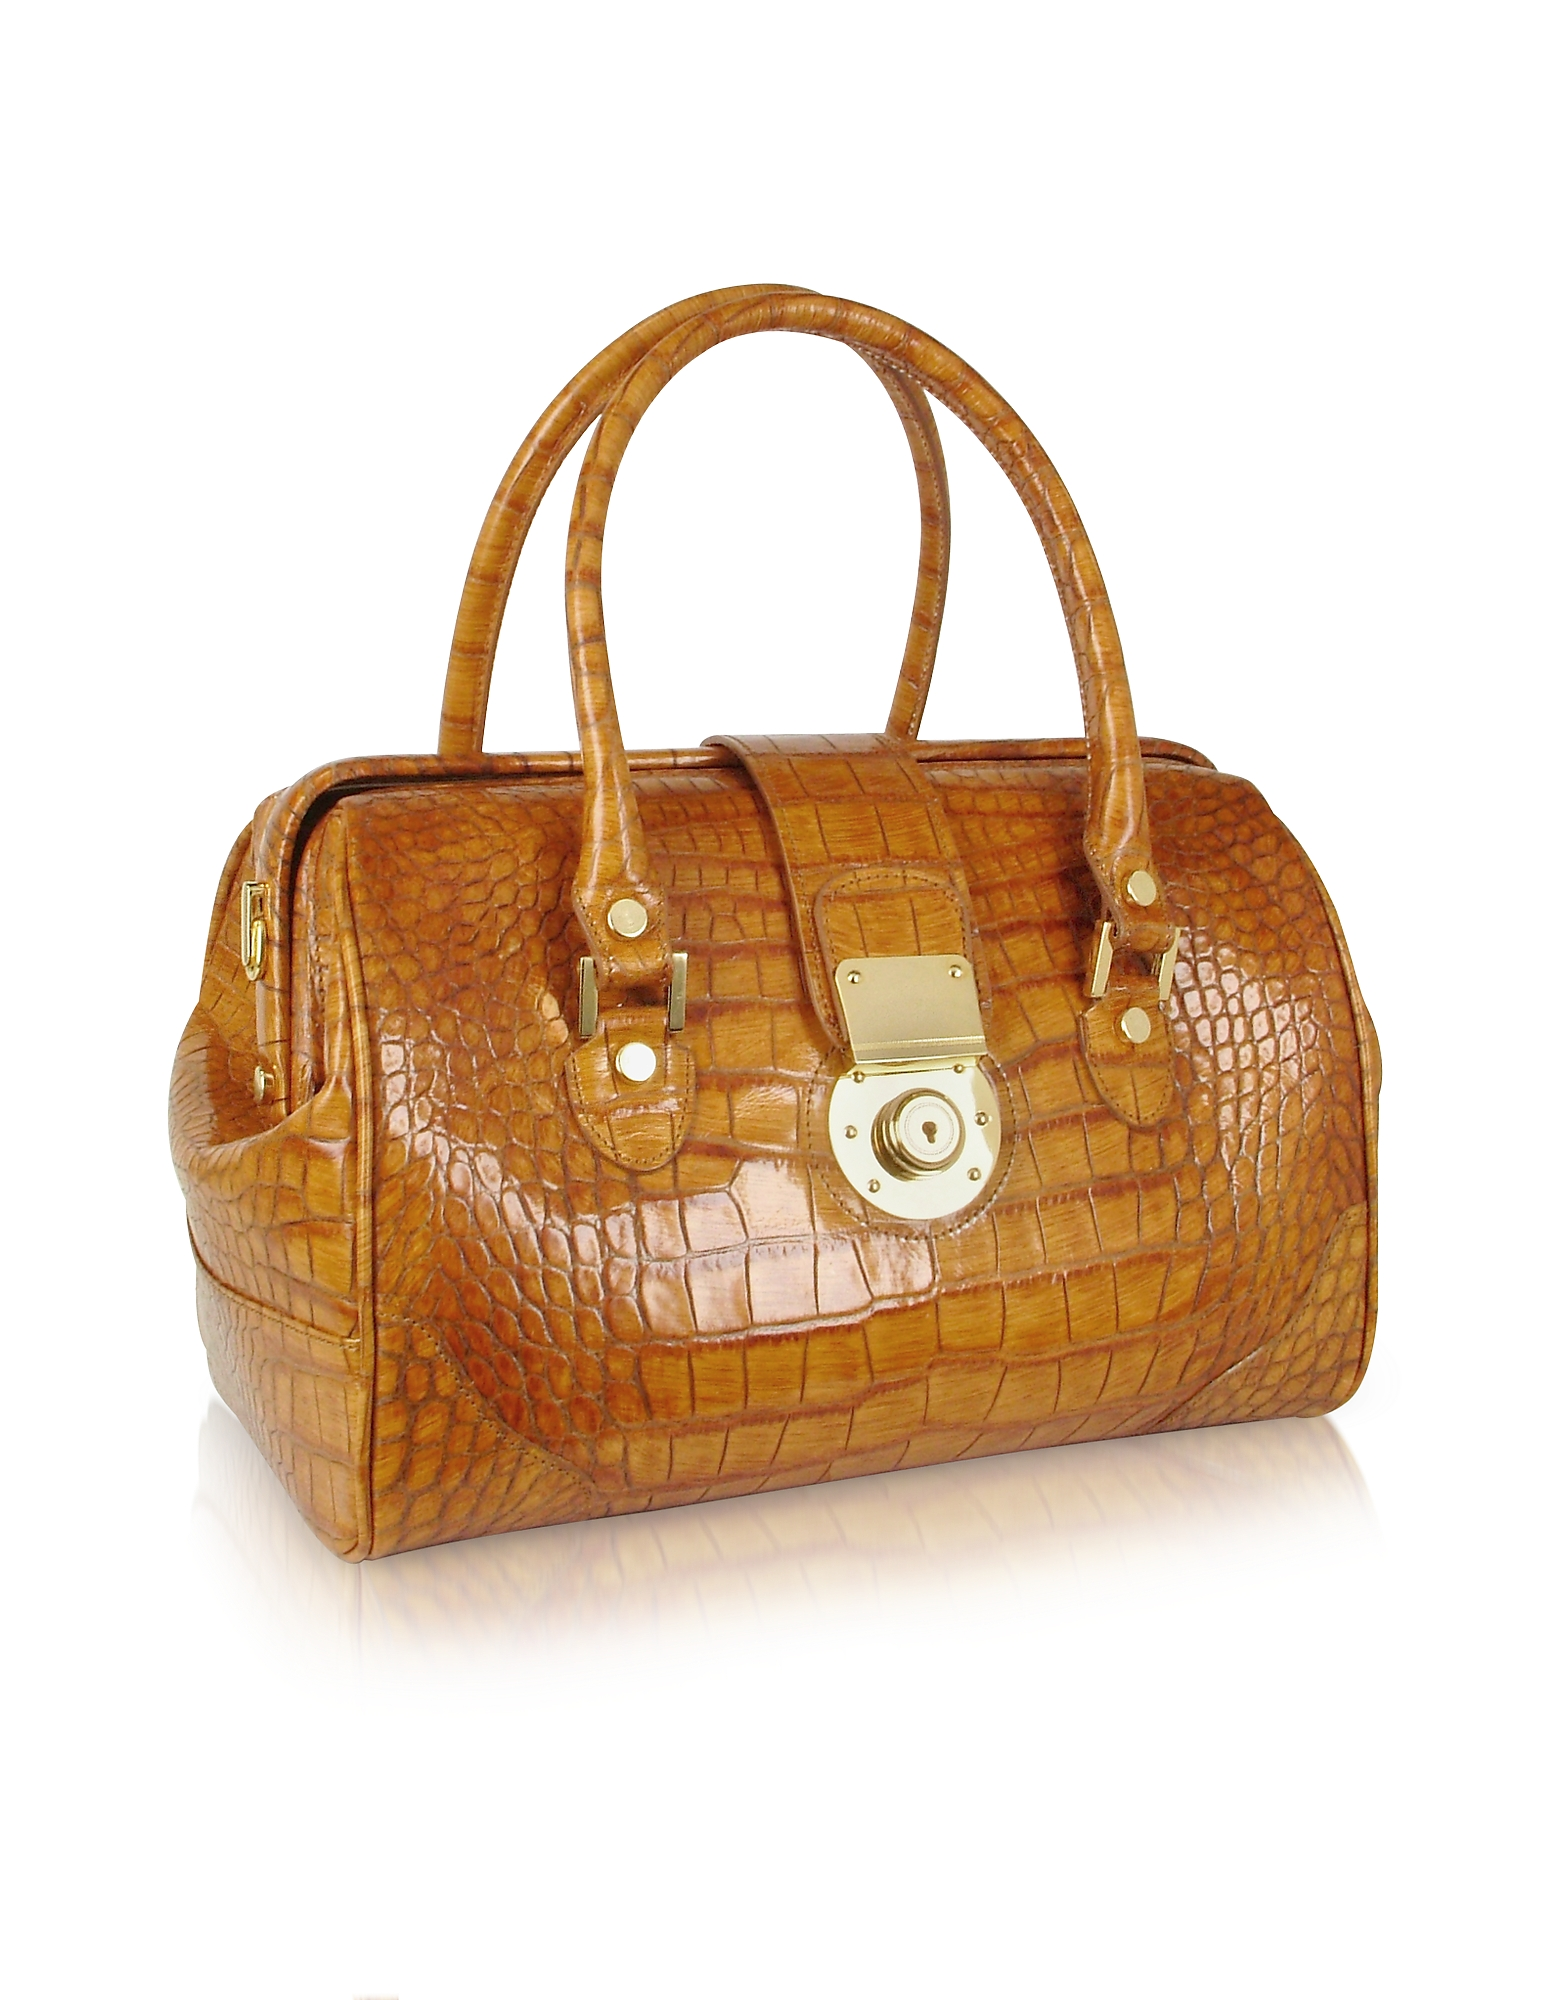 L.A.P.A. Handbags, Camel Croco Stamped Leather Doctor Bag